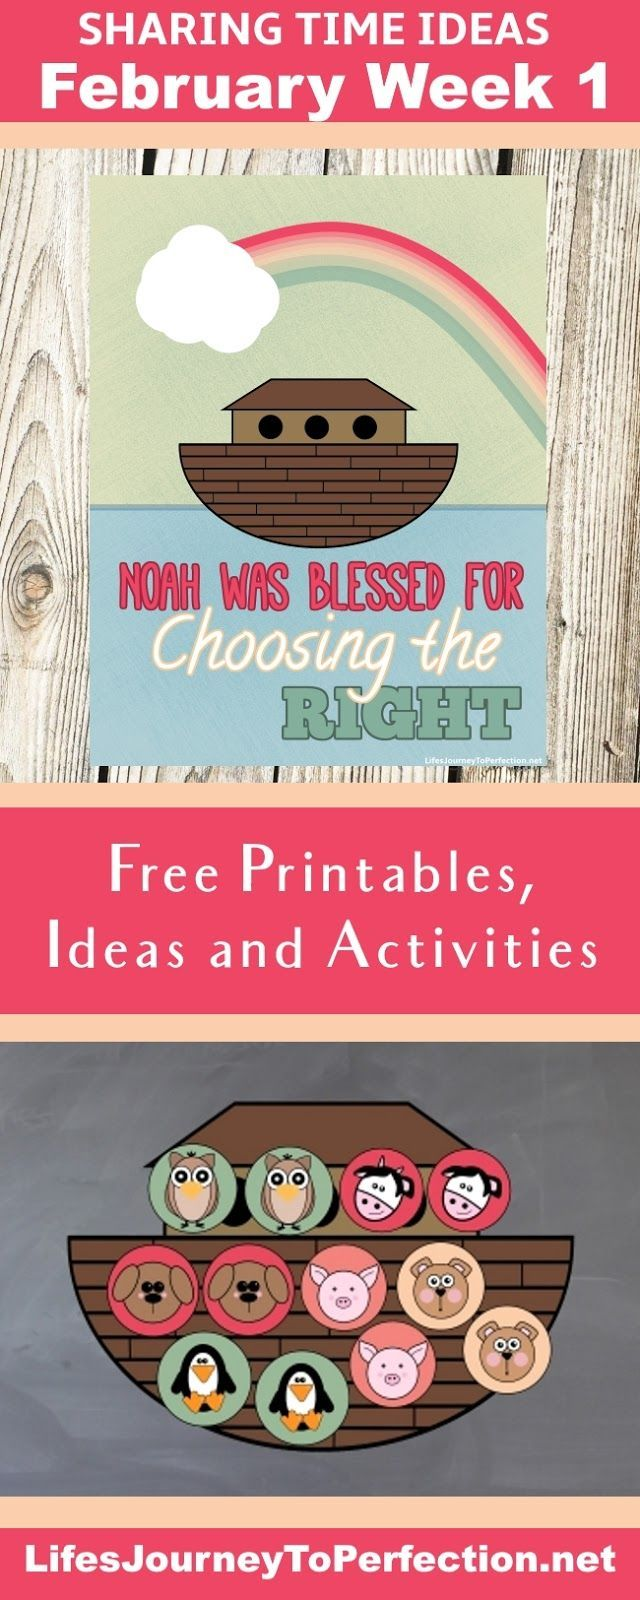 February week 2 Sharing time ideas for LDS Primary lesson about Noah was blessed for choosing the right